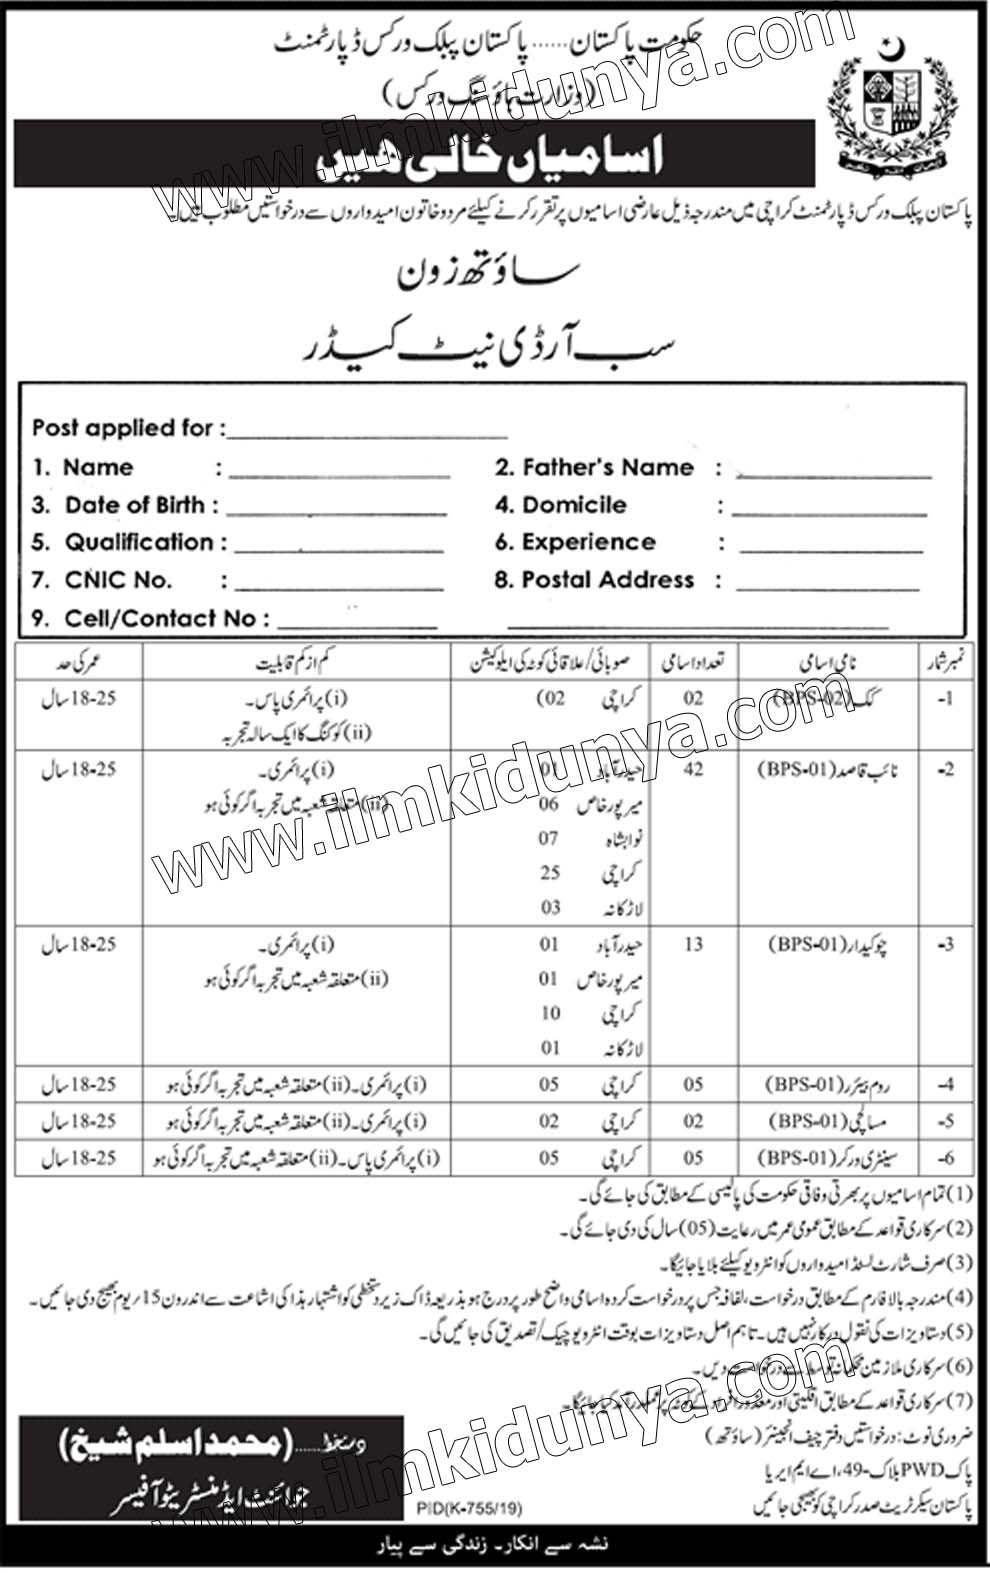 Pakistan Public Works Department jobs 2019